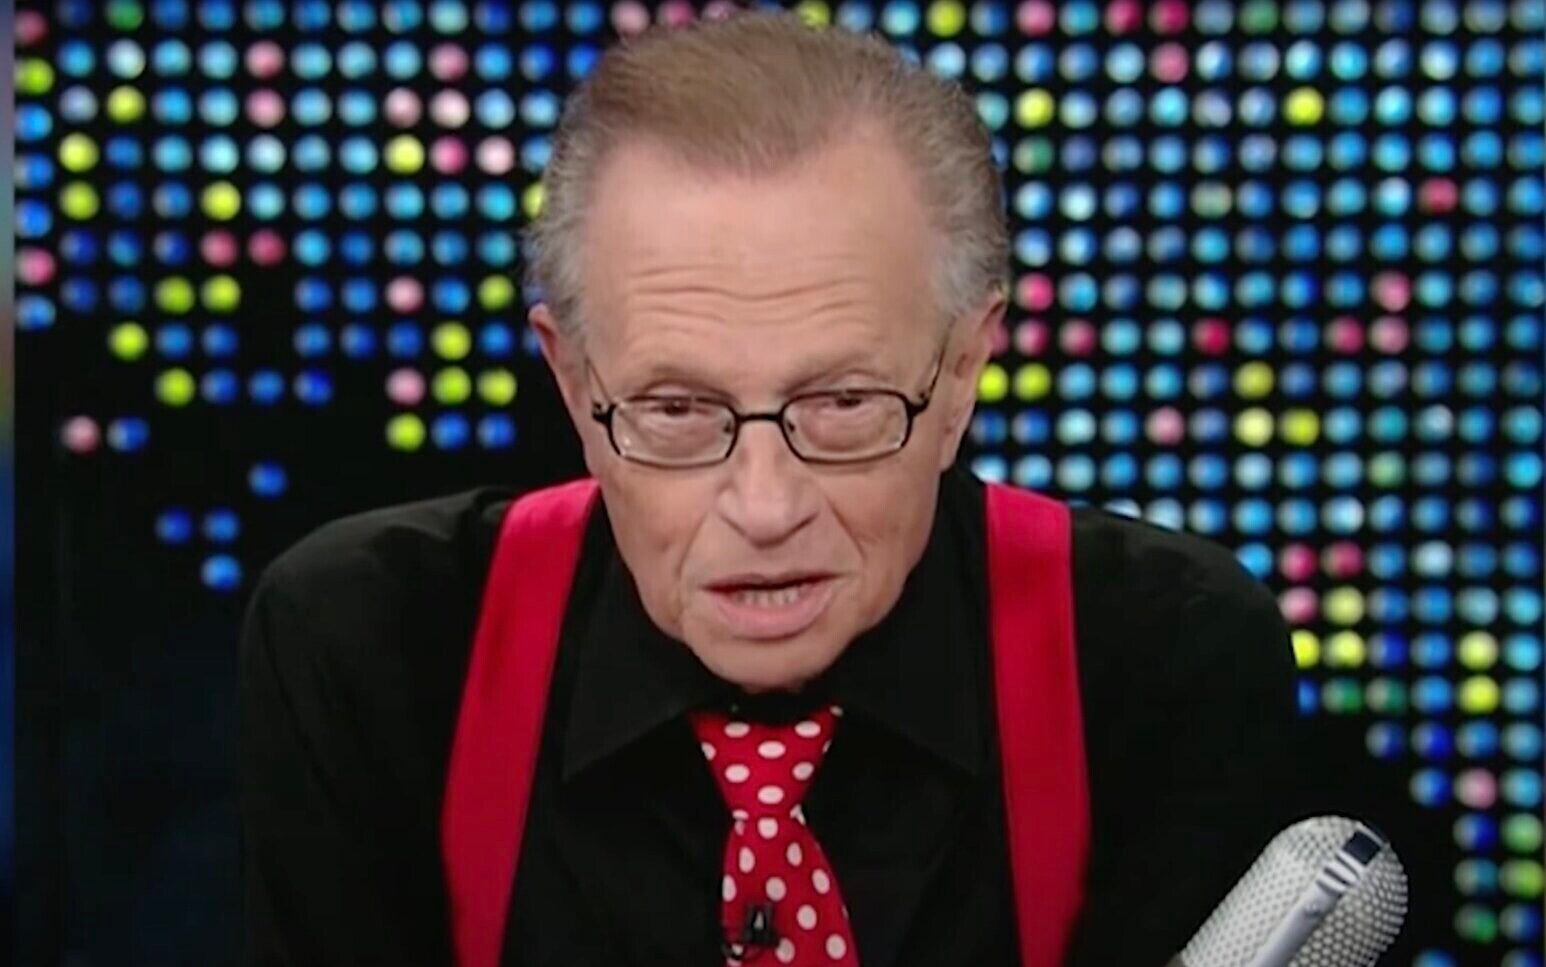 Larry King – Meghan McCain, Celine Dion, Lisa Vanderpump And Many More Pay Tribute To The Late Legend After His Passing